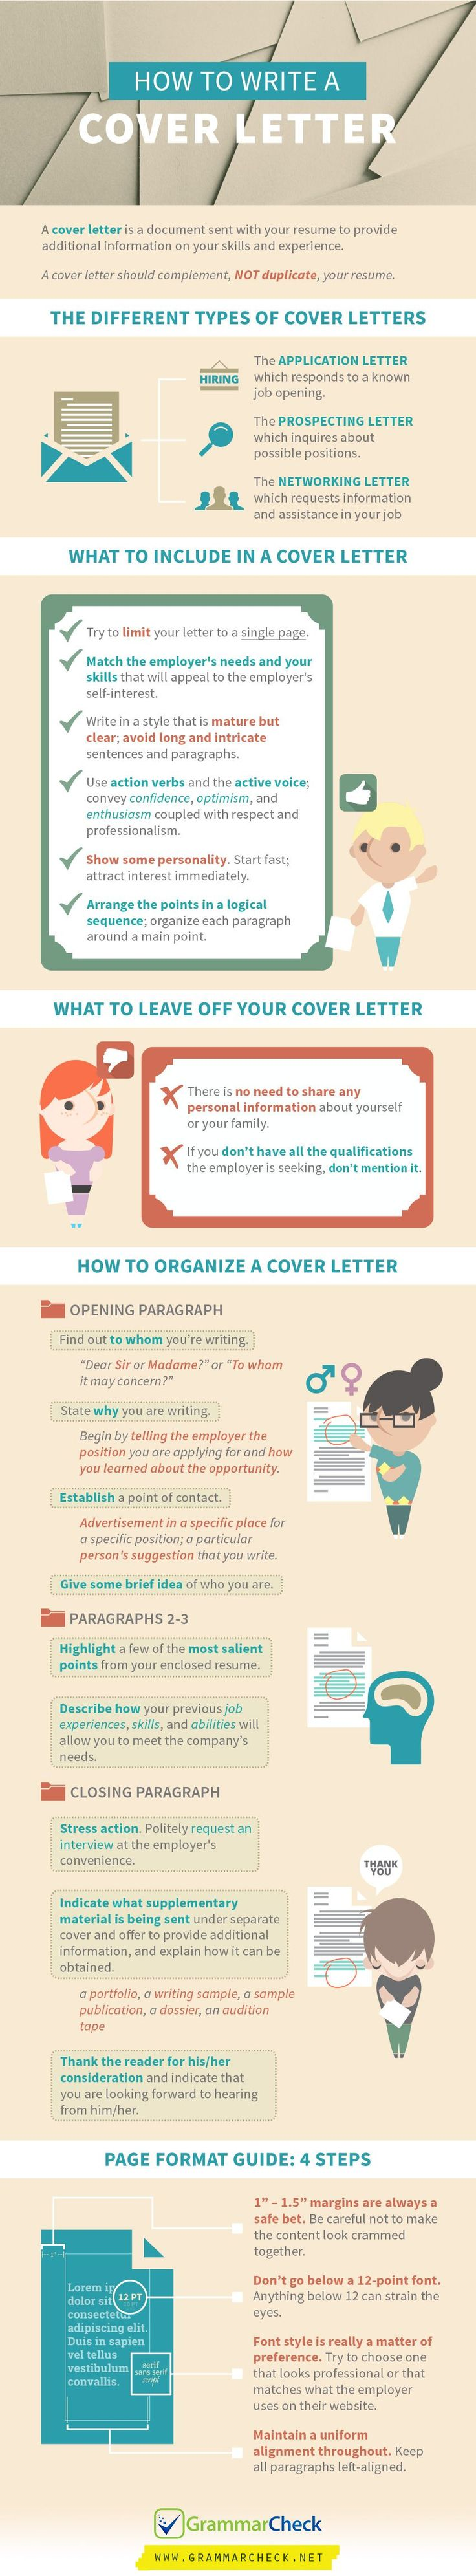 25 unique free cover letter examples ideas on pinterest resume free education for all how to an excellent cover letter source madrichimfo Image collections